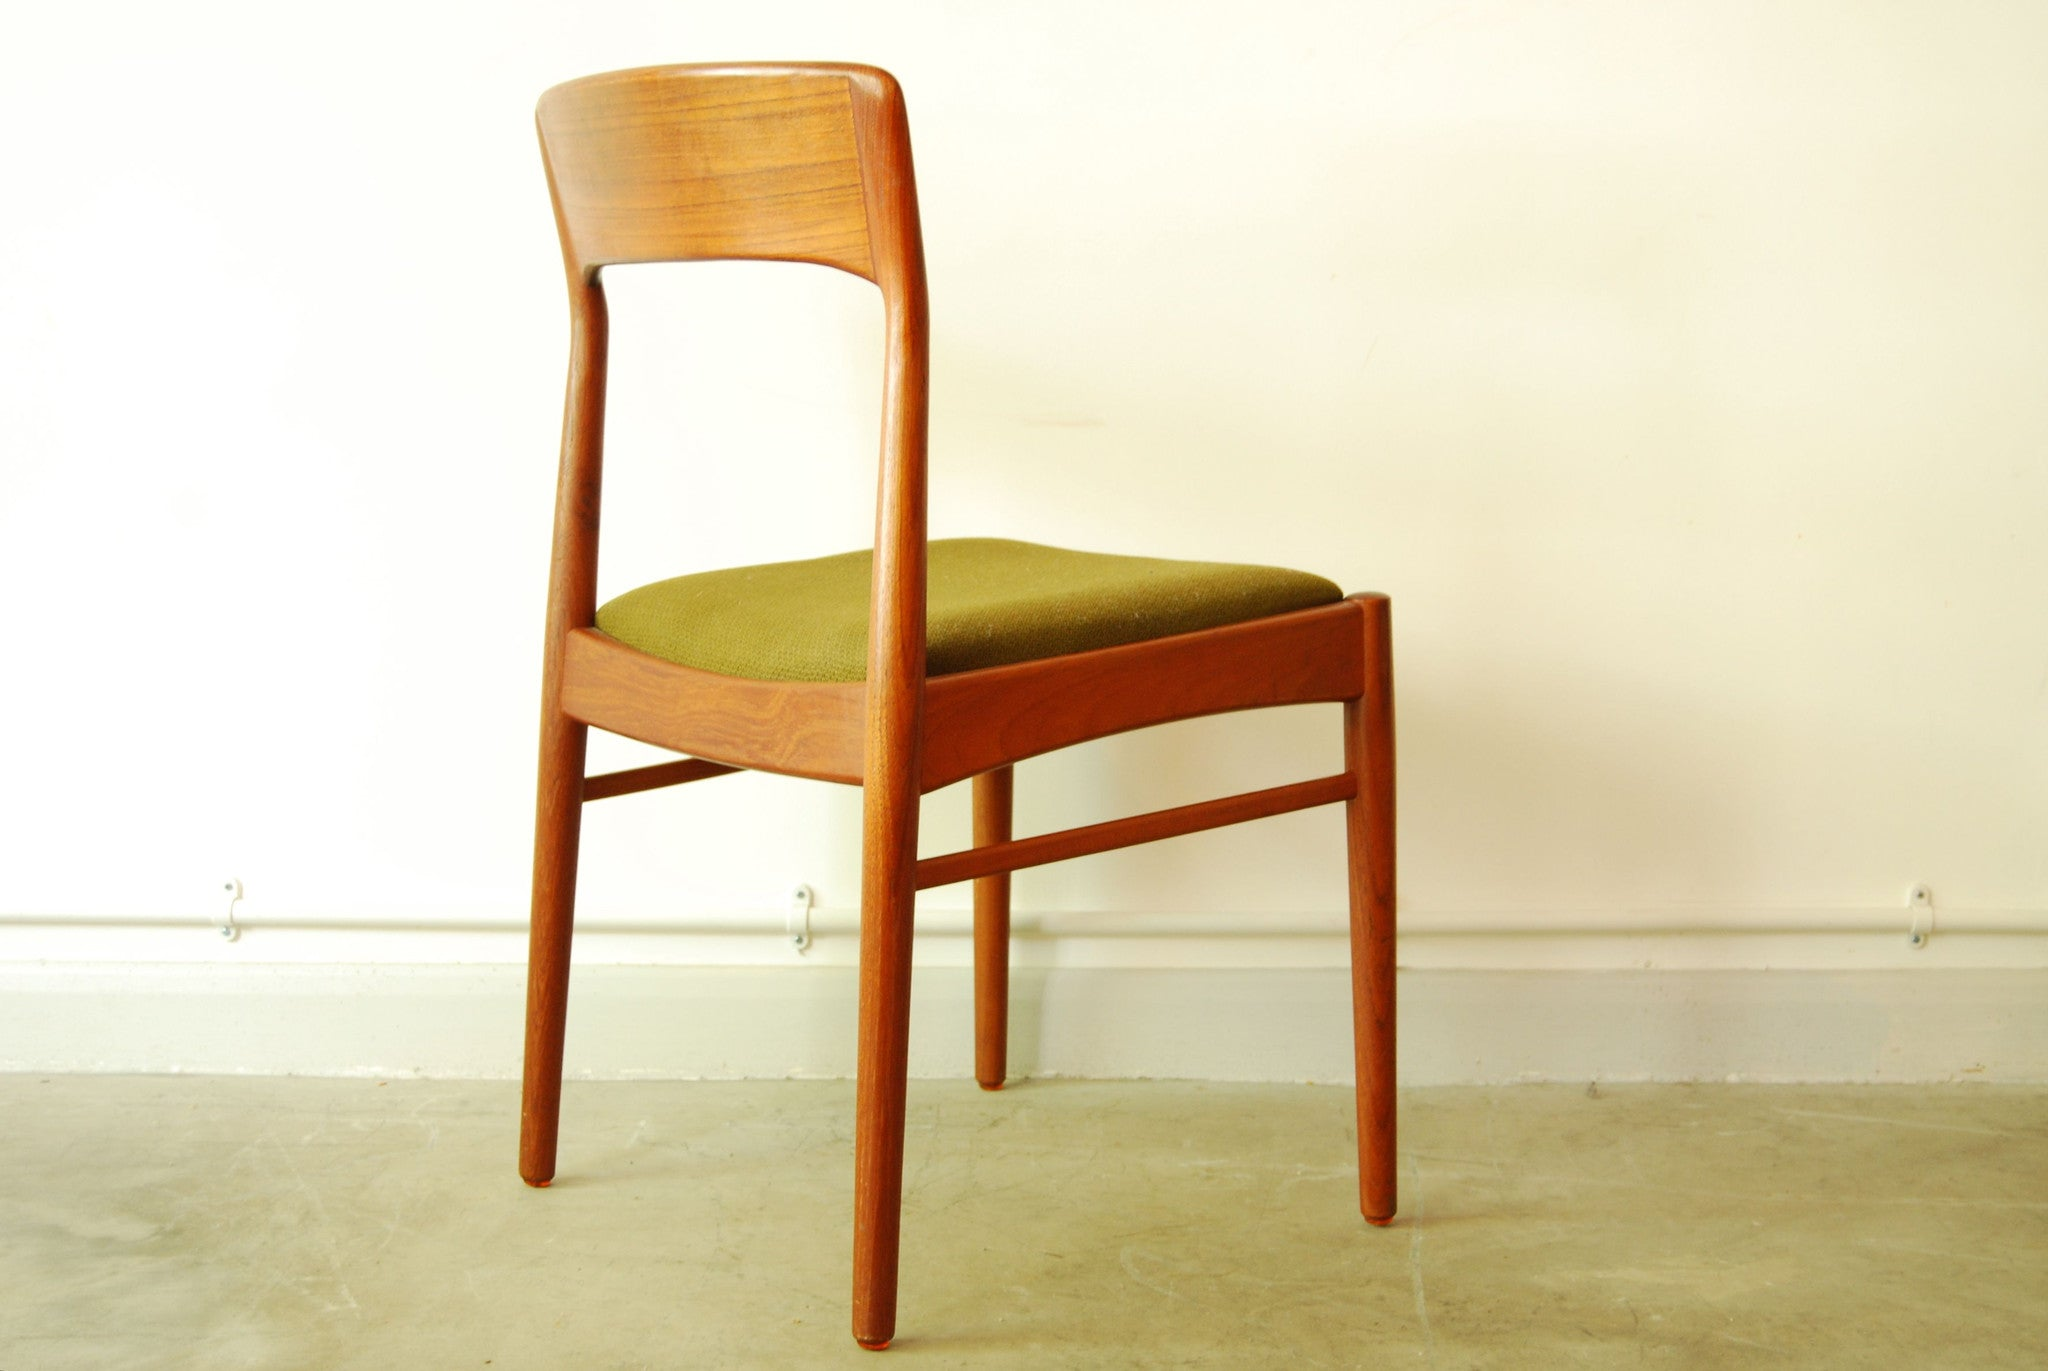 Chase & Sorensen Set of five teak dining chairs by Johannes Andersen